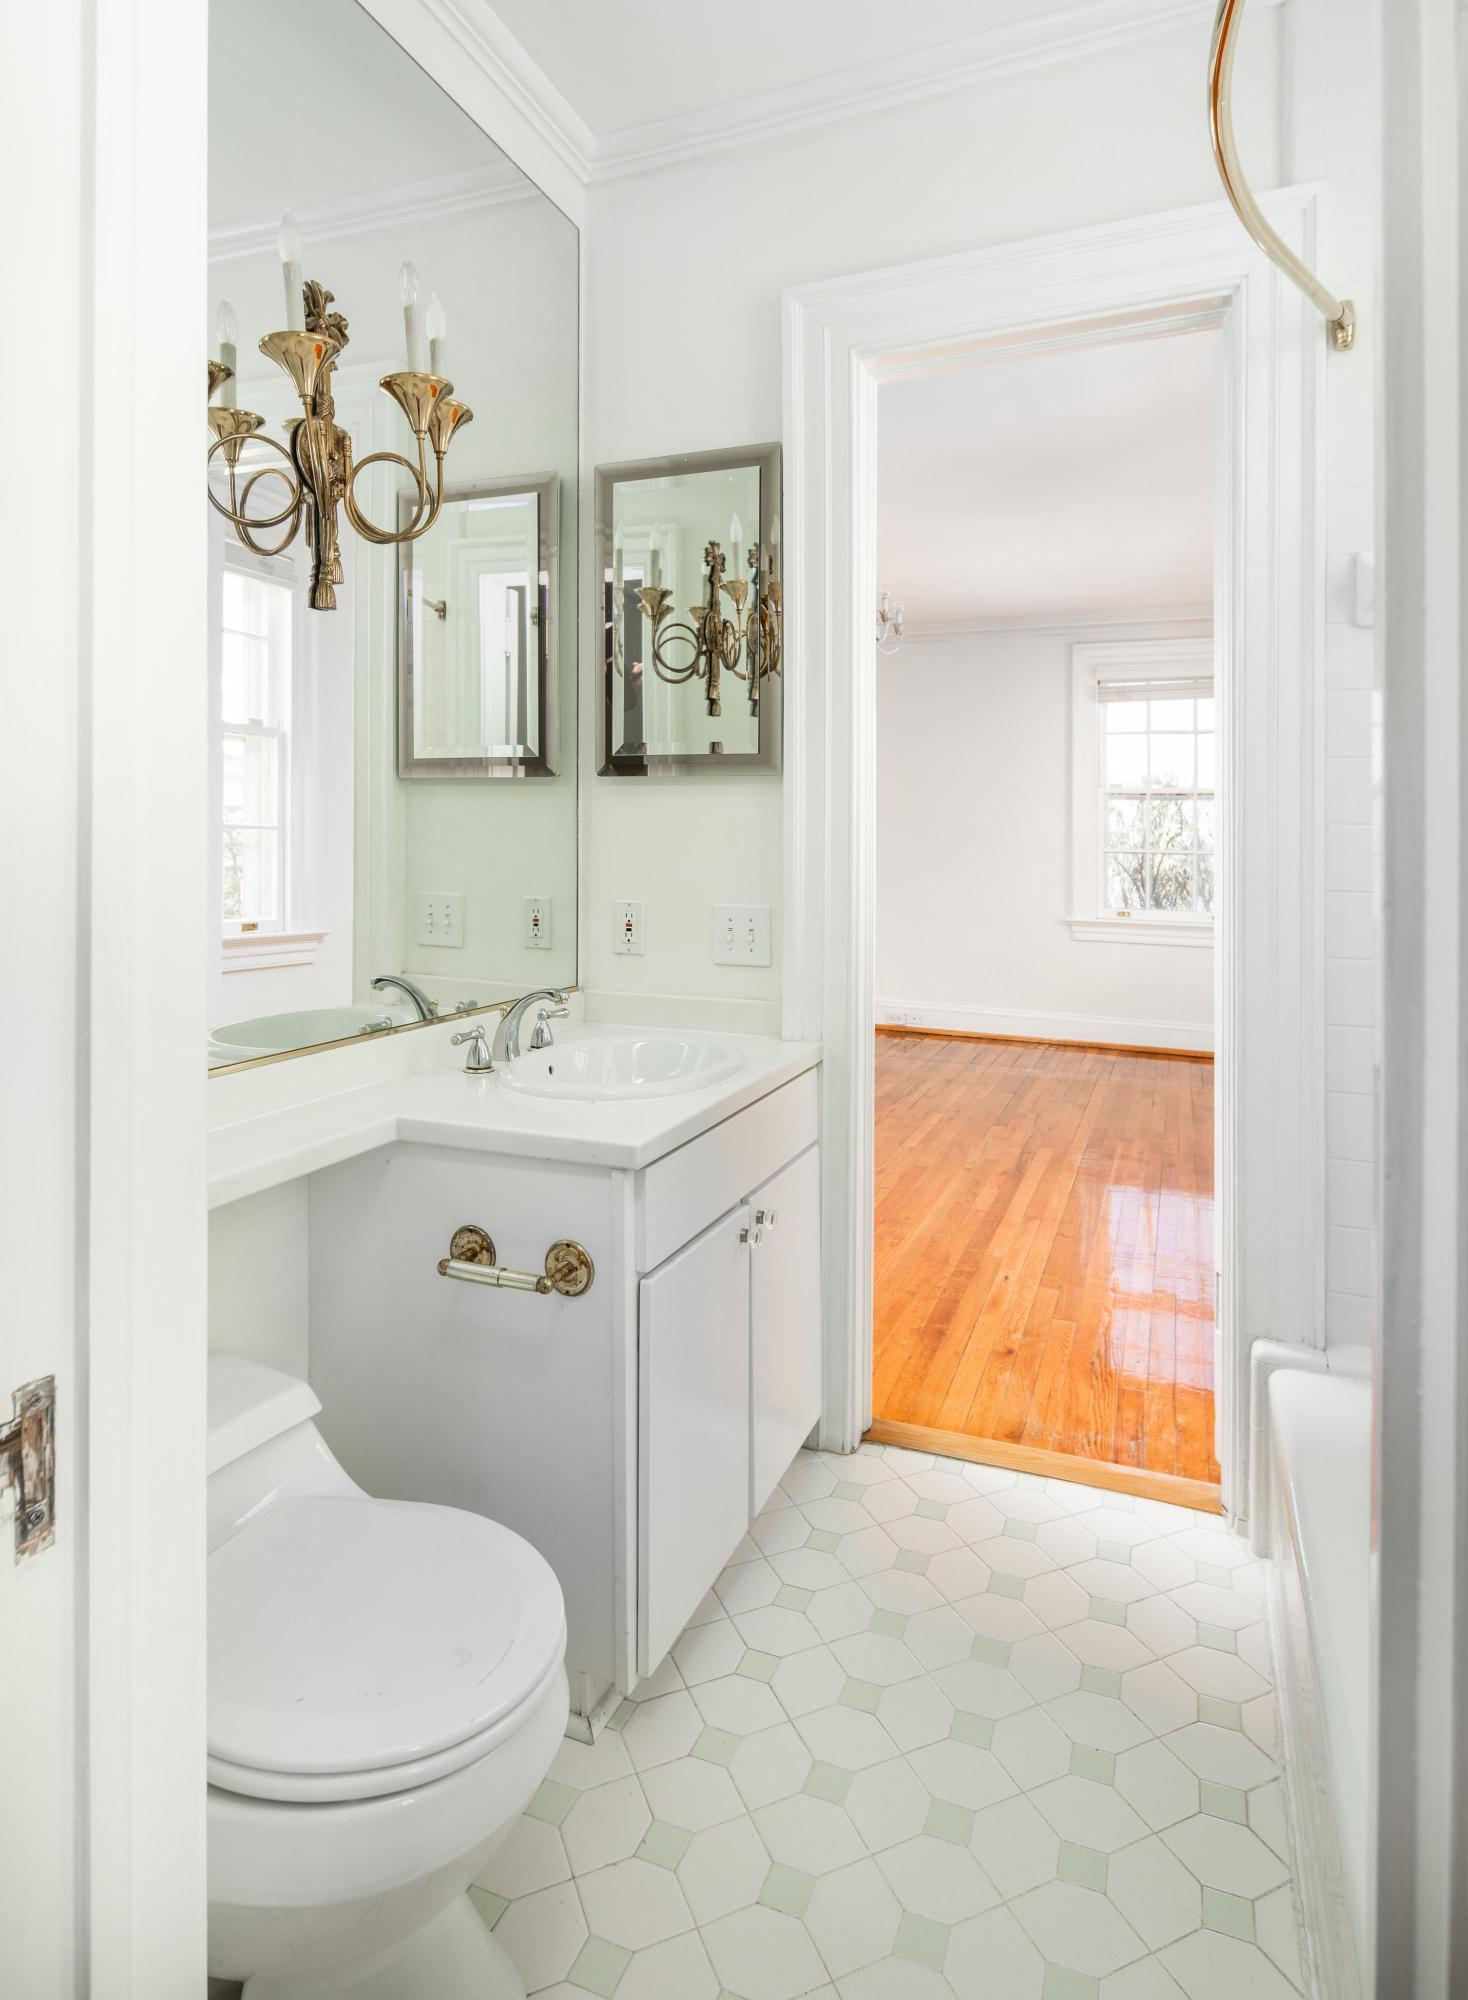 South of Broad Homes For Sale - 104 Murray, Charleston, SC - 10